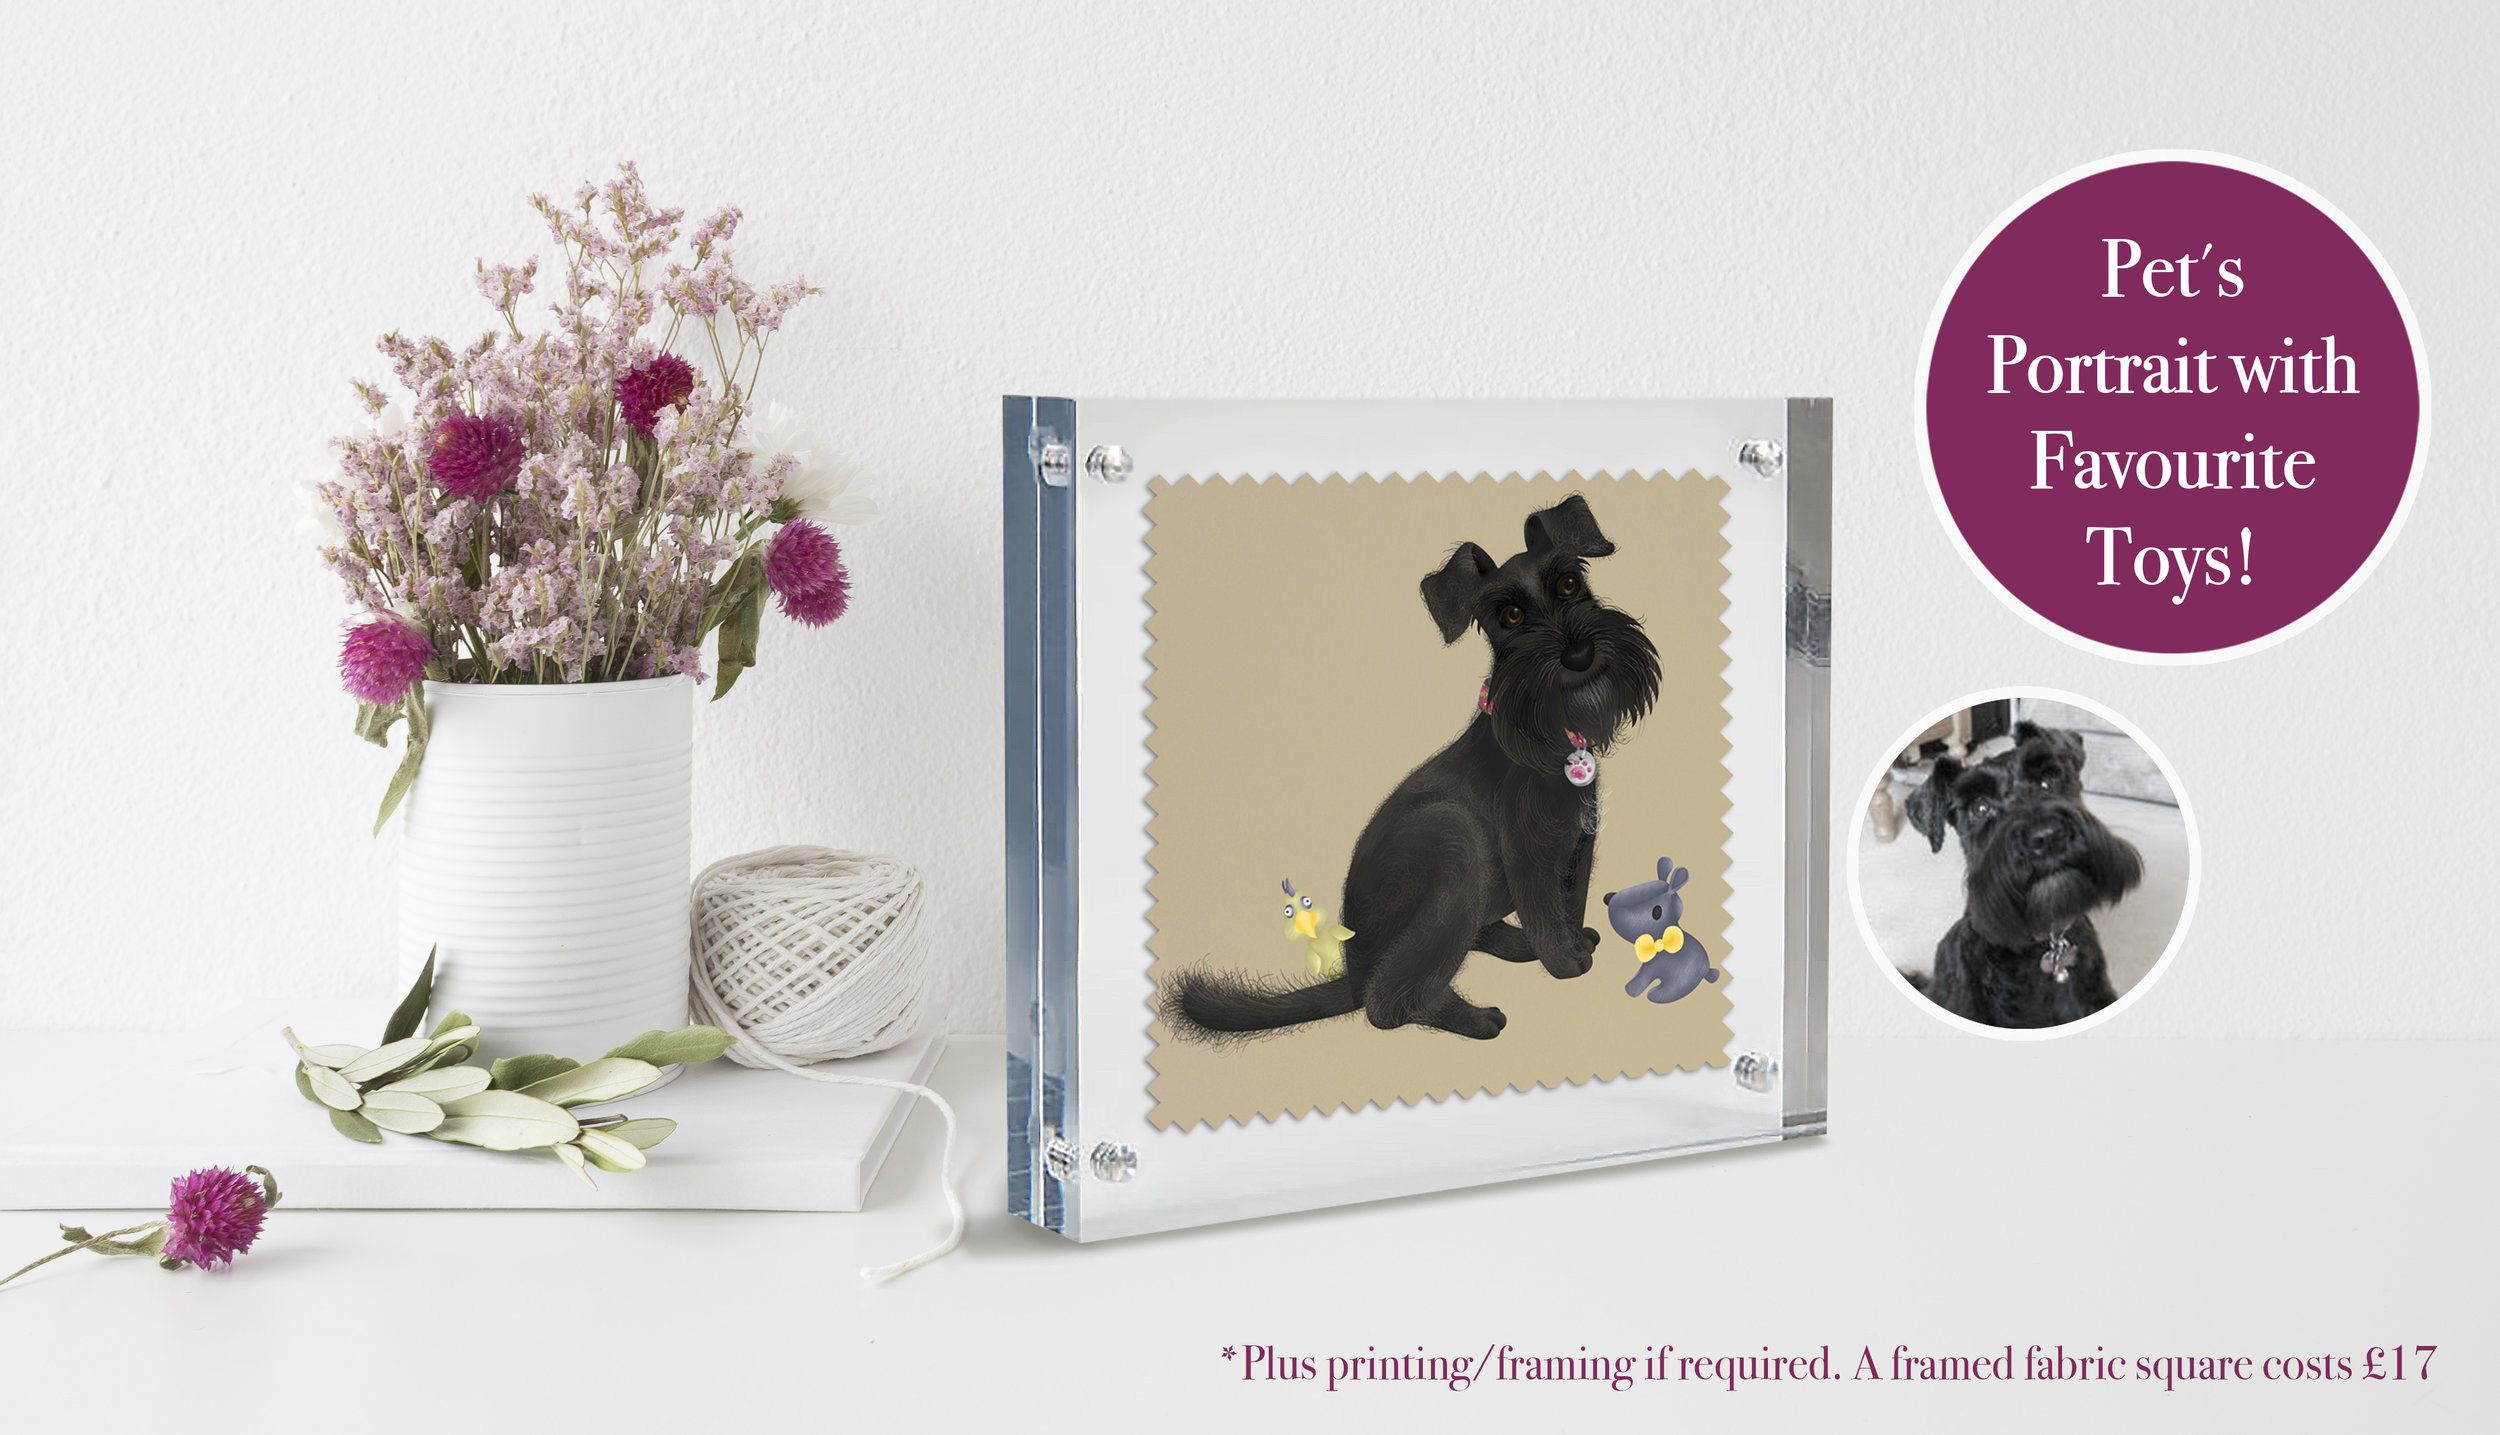 Pet's Portraits - £100 (x1 pet illustrated from head to toe).